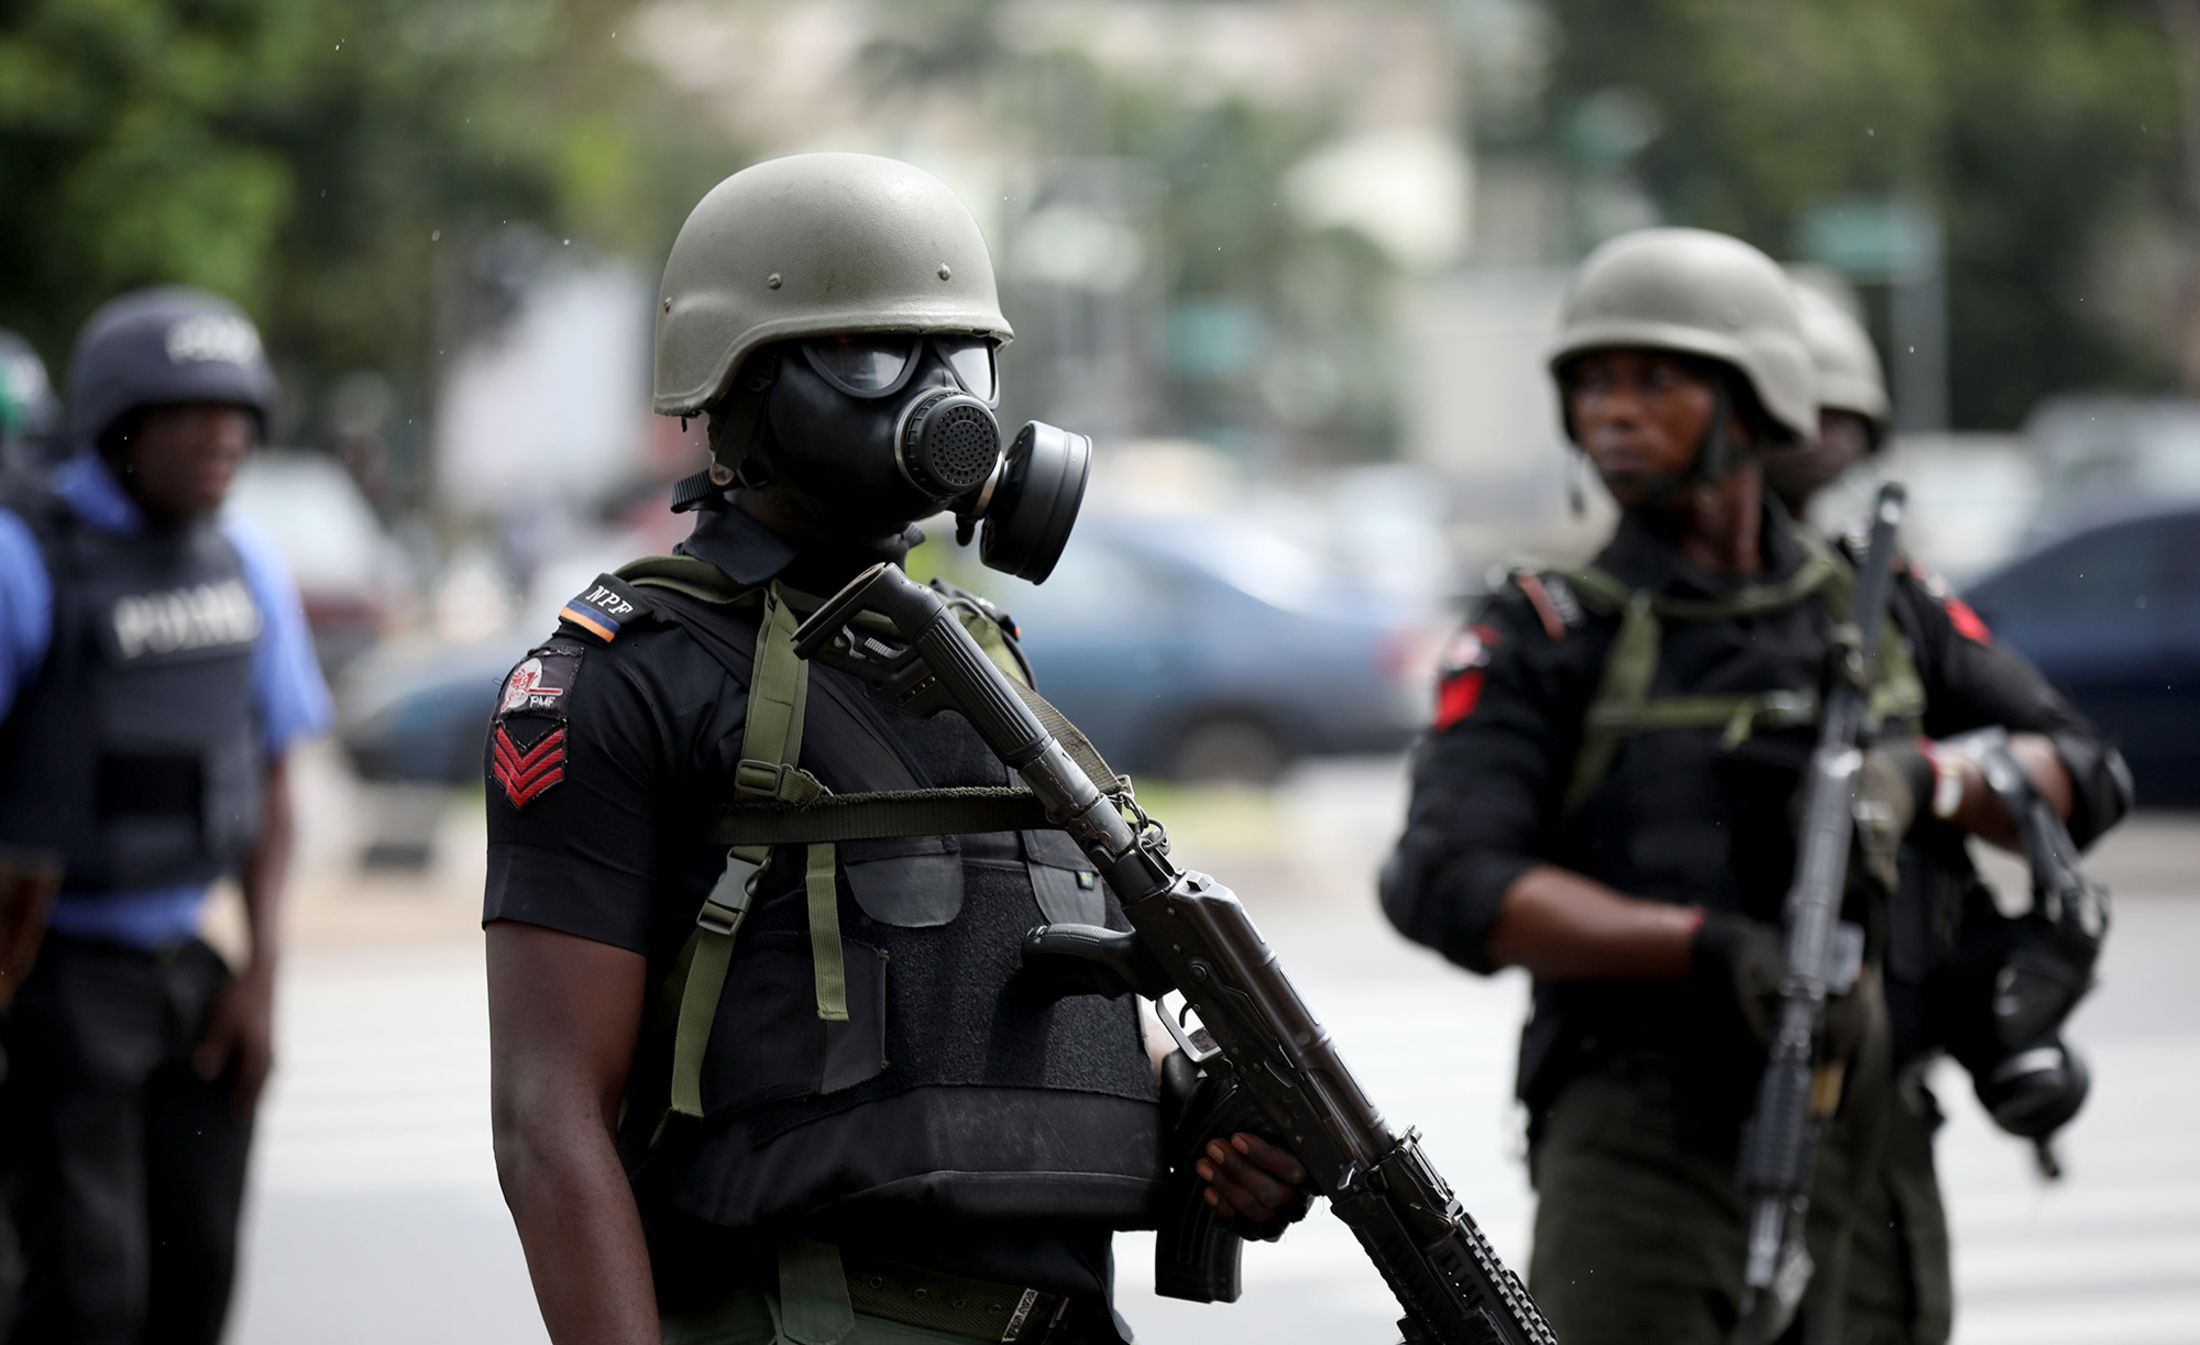 Riot policemen wearing masks stand in a street during a protest in Abuja on July 23, 2019.